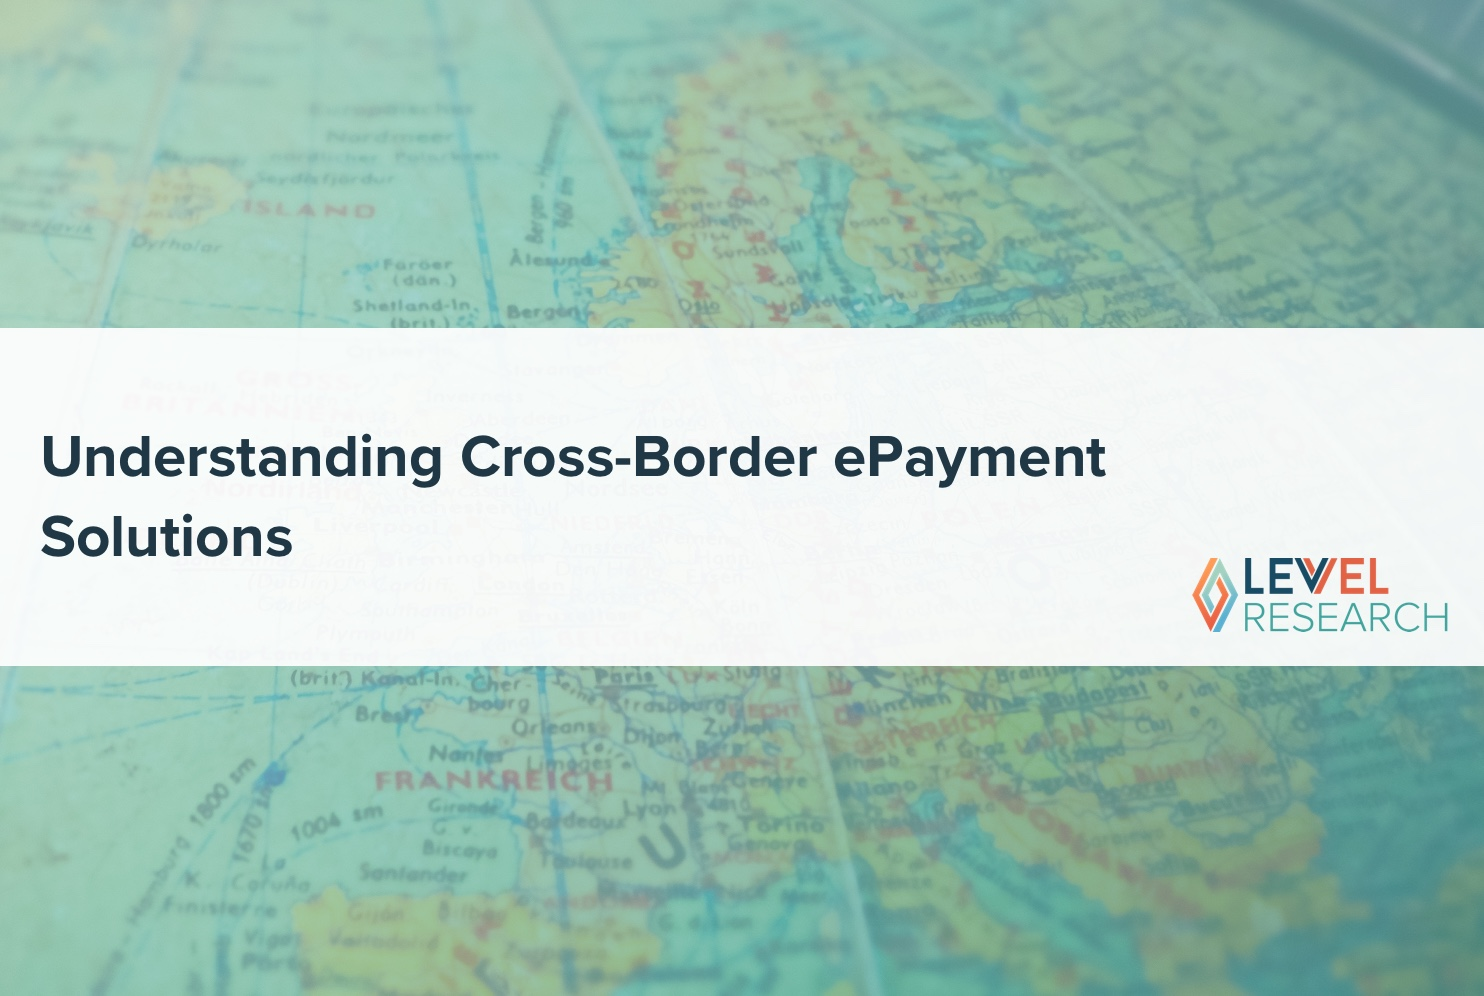 Understanding Cross-Border ePayment Solutions